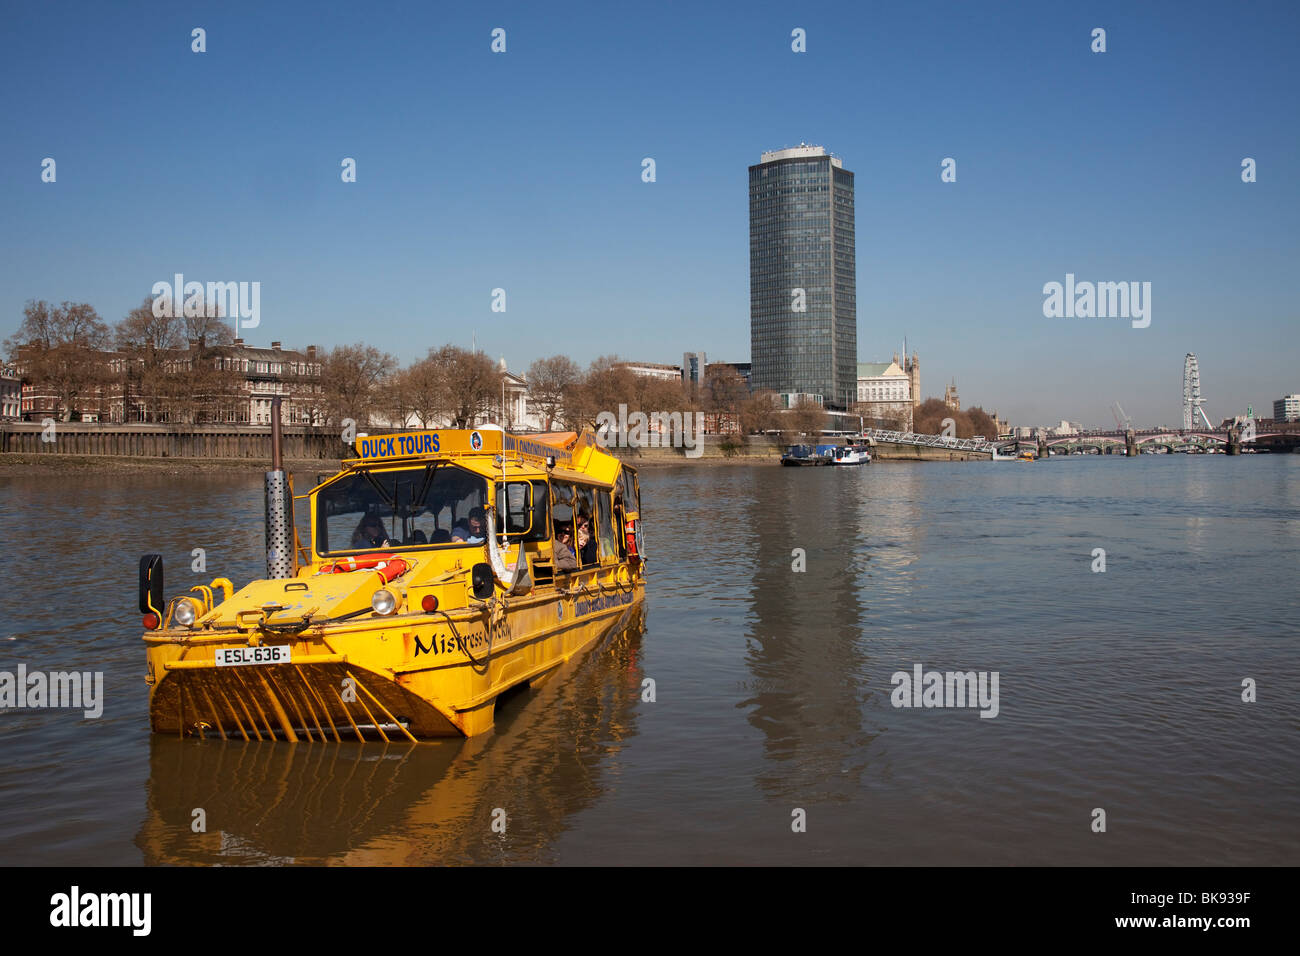 Scene along the River Thames as a Duwk amphibious vehicle drives out of the river onto dry land. The Duck Tours - Stock Image